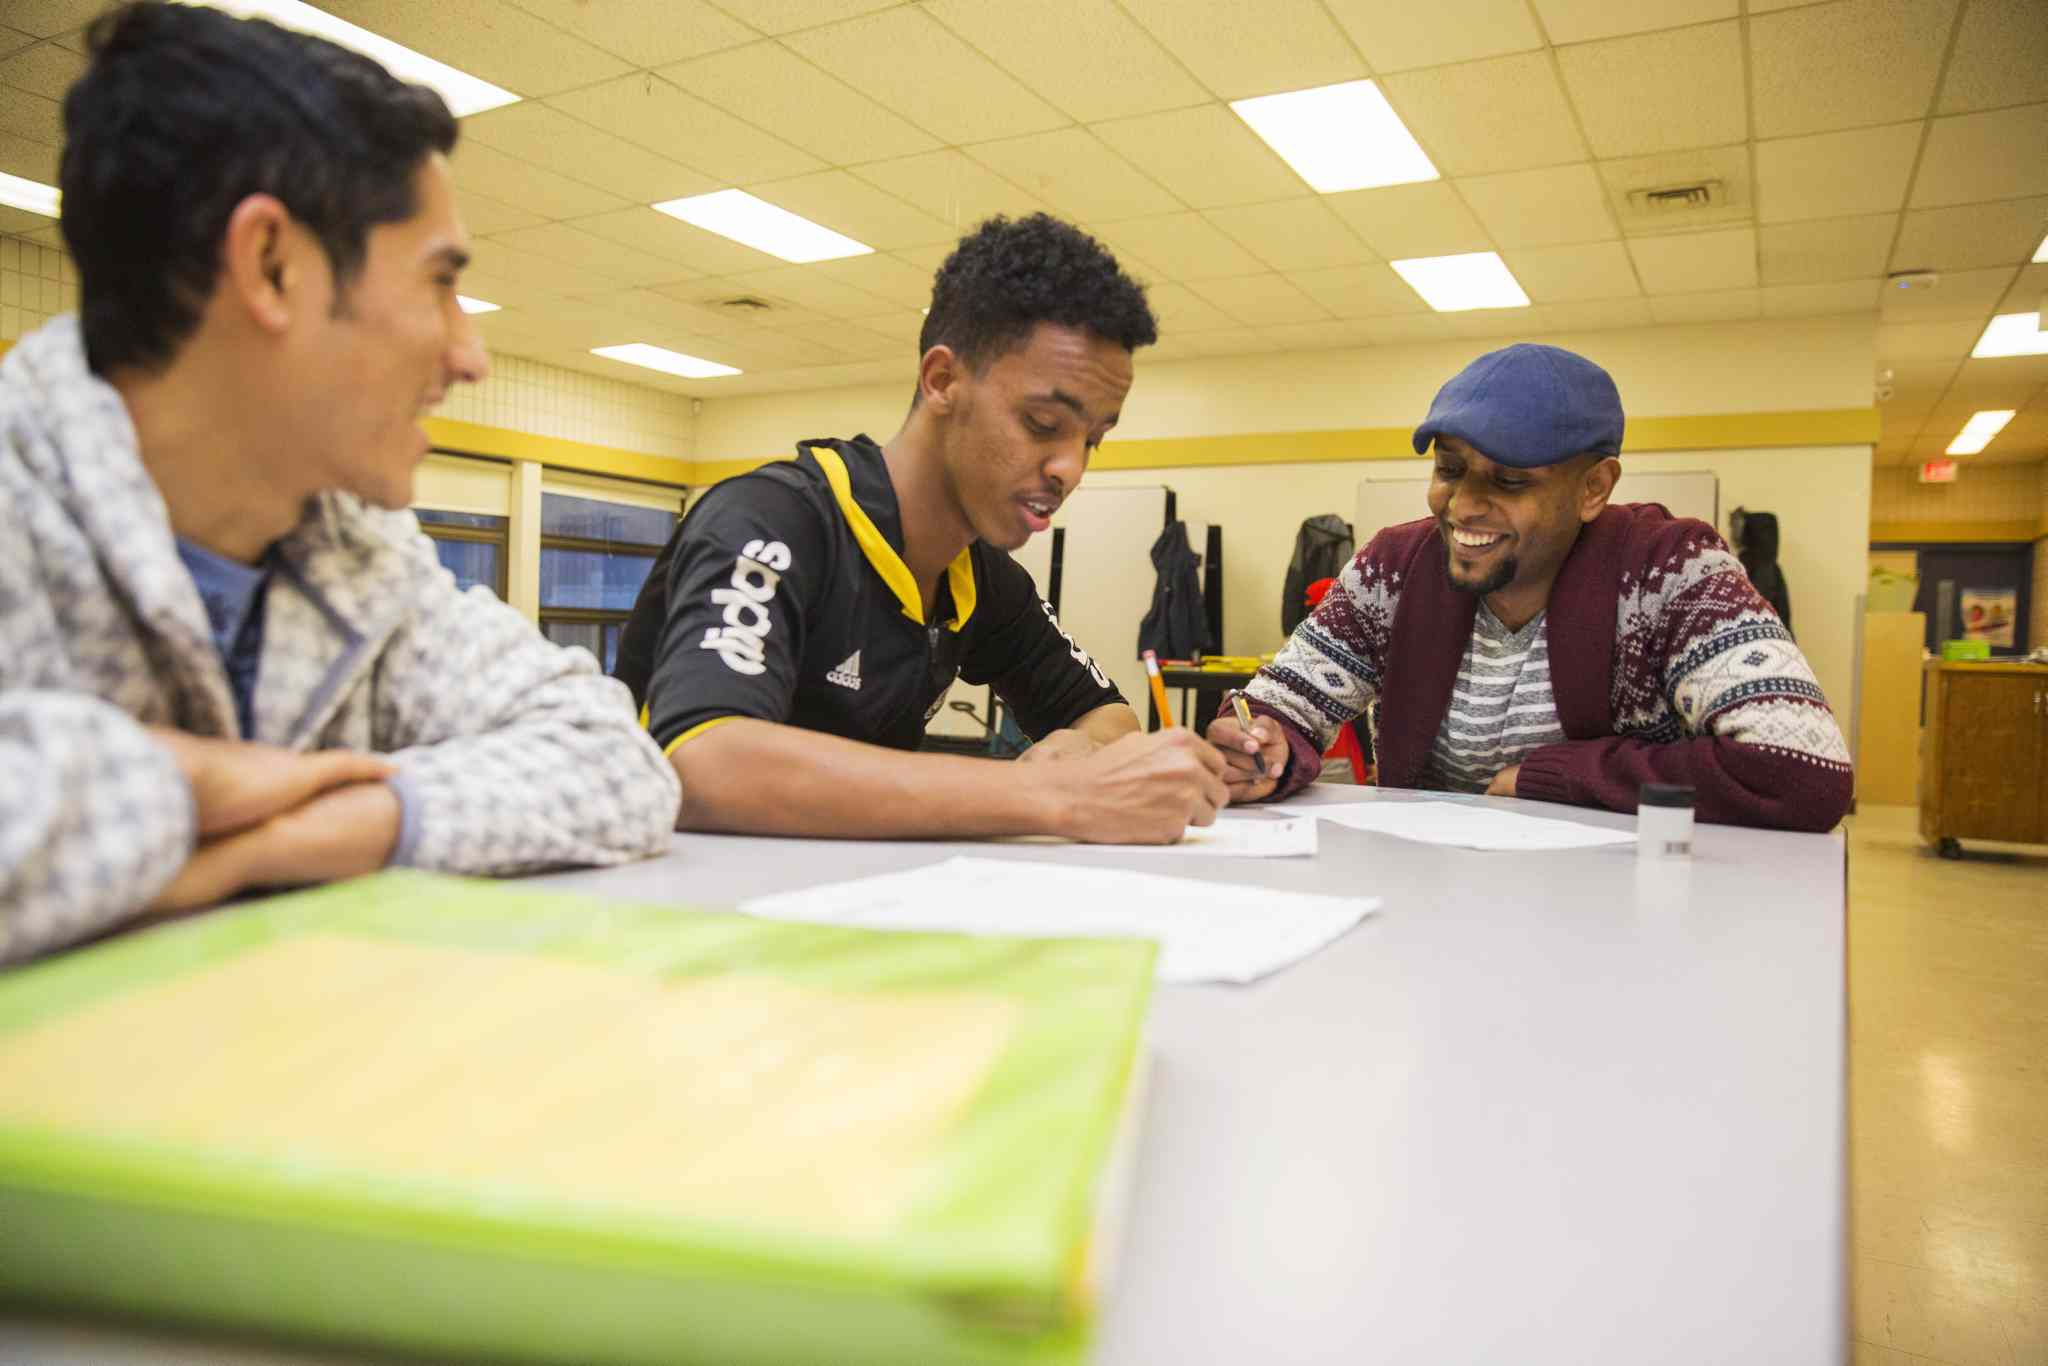 Surafel Kuchem works with volunteer Shakaib Hassani, far left, and student Salman Hassan, centre, at the Homework and Education for Youth (HEY) program at Victoria-Albert School in Winnipeg.